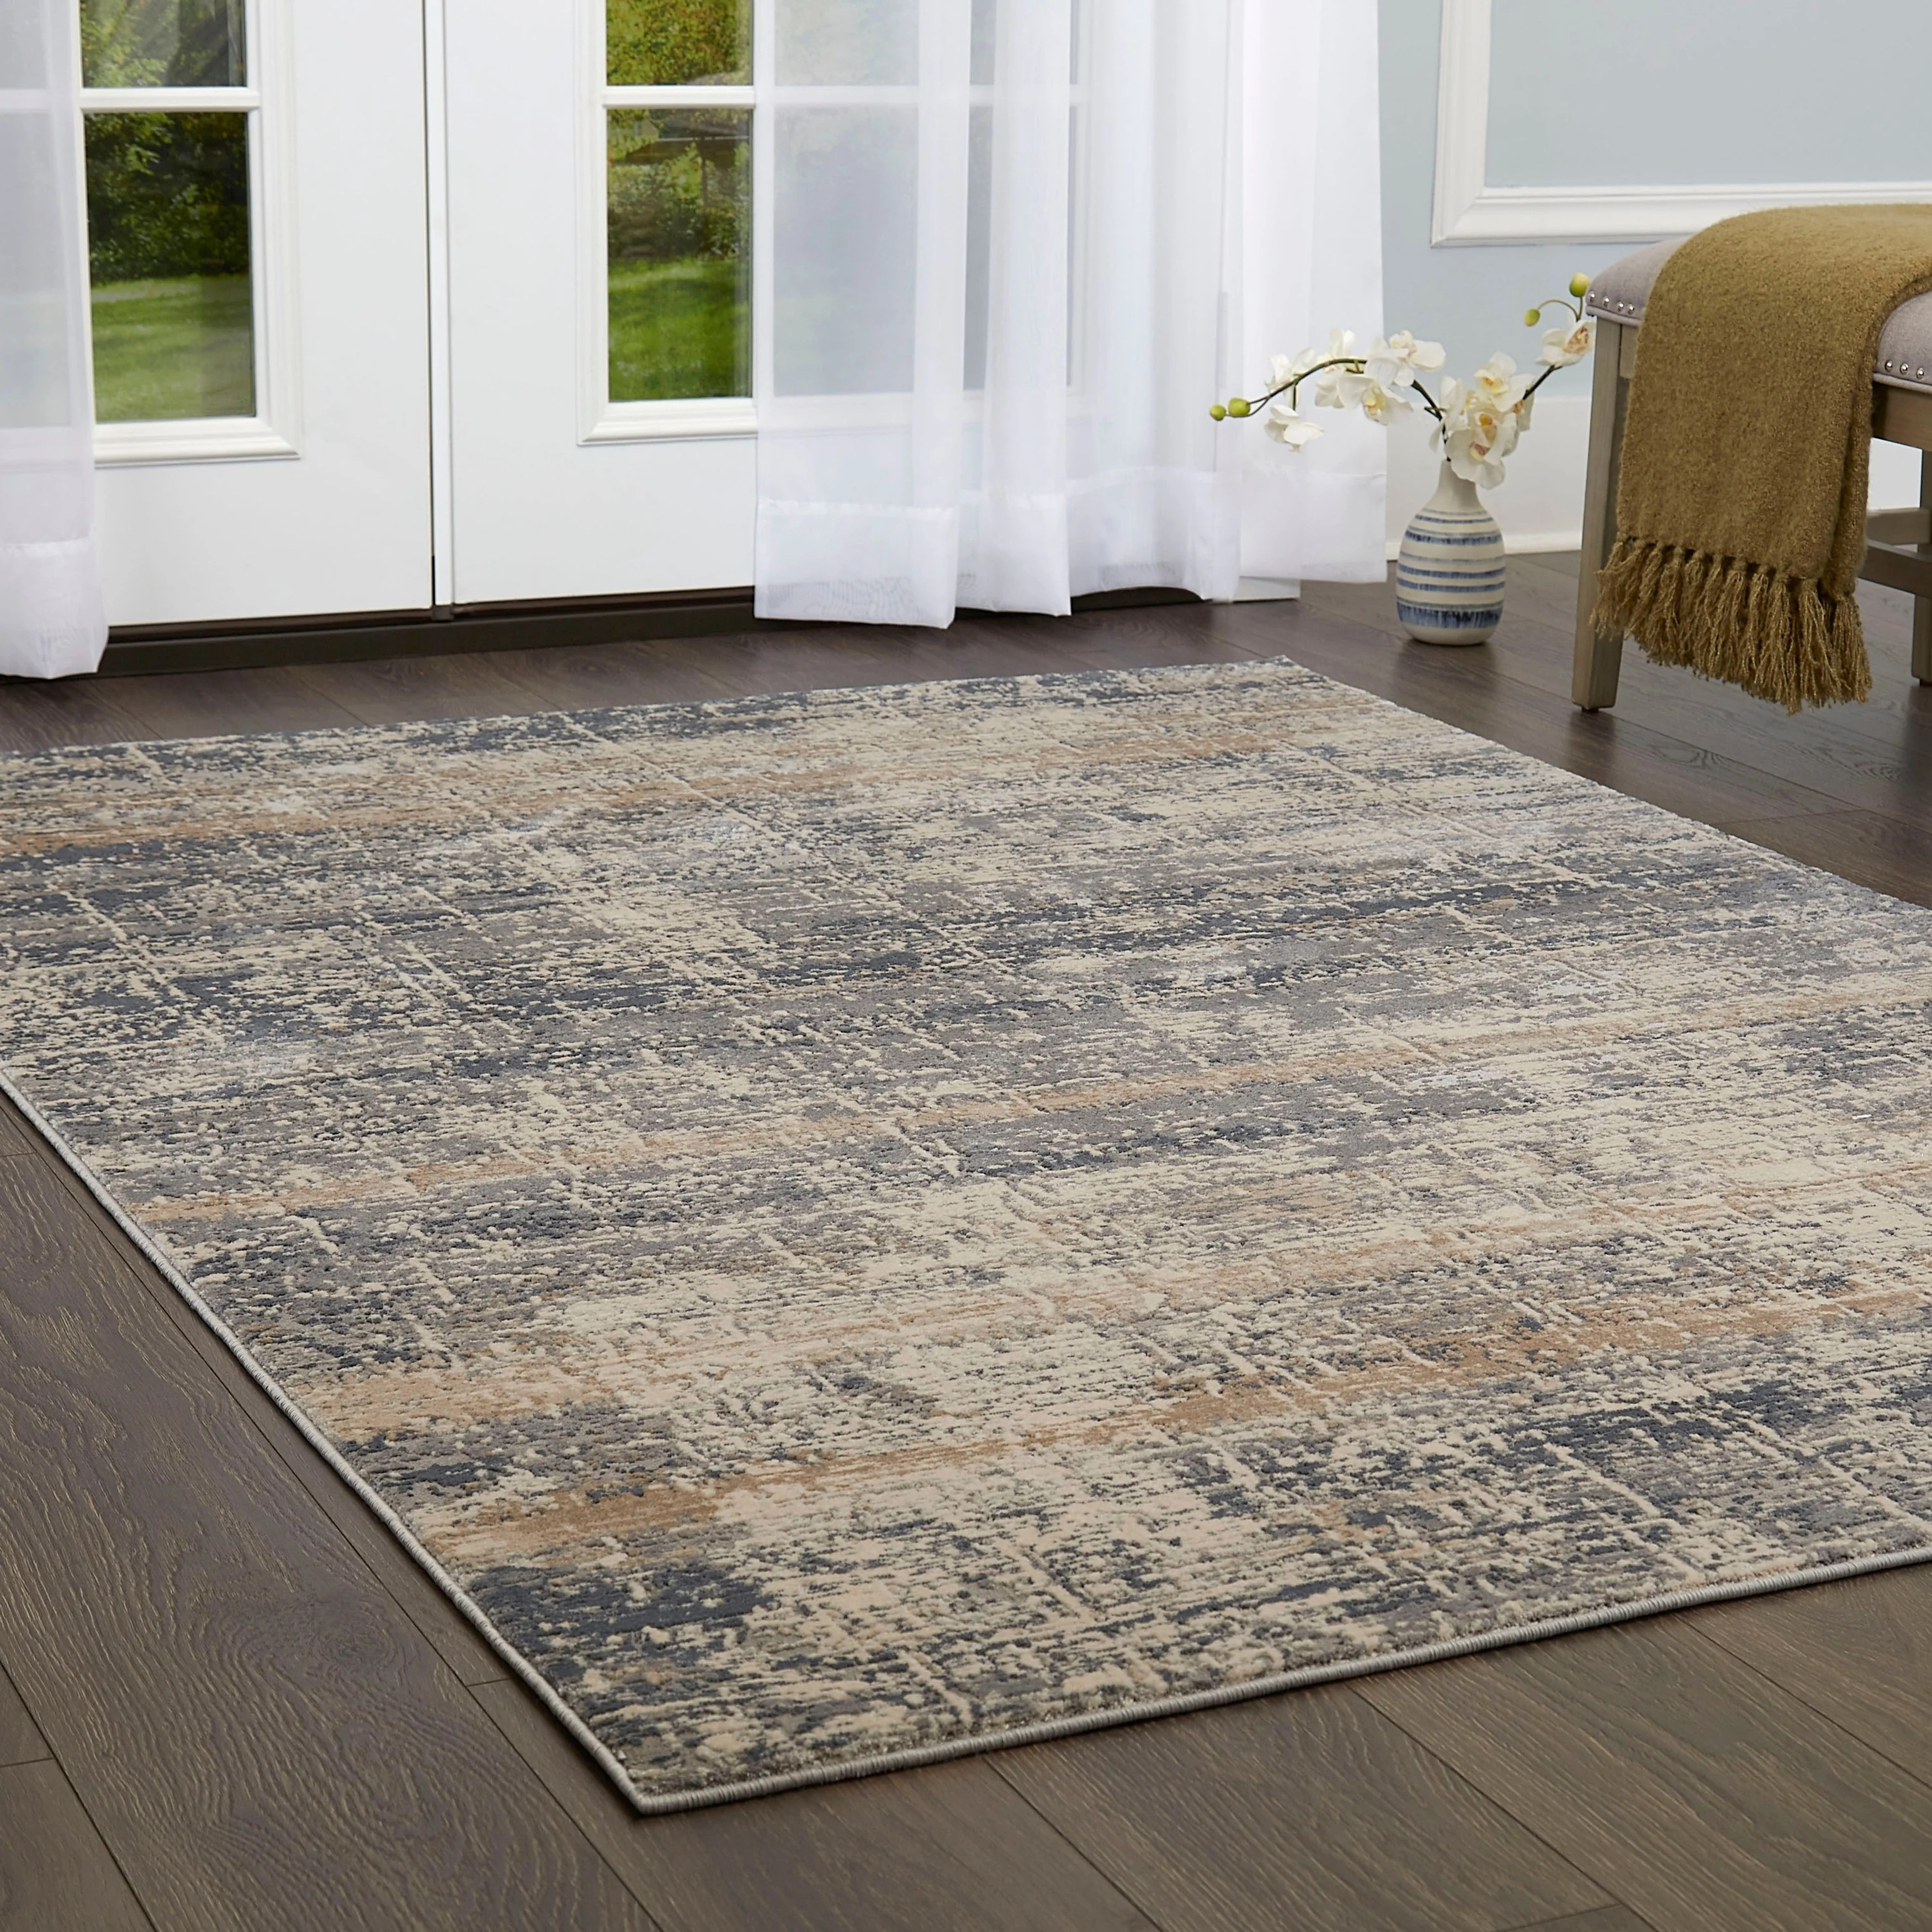 Nicole Miller Kenmare Distressed Marbled Area Rug